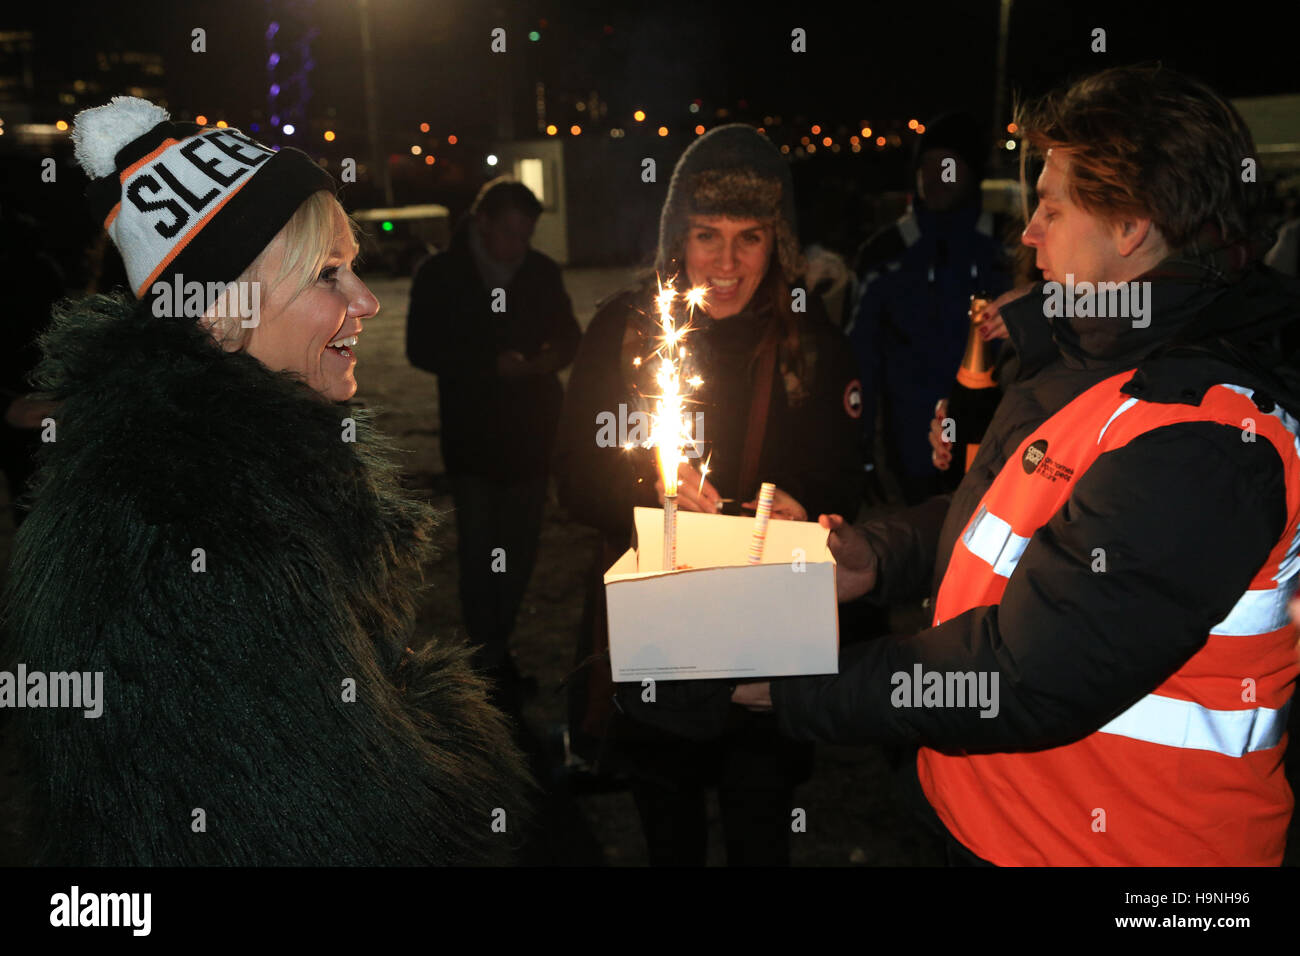 Organisers surprise Lisa Maxwell with a birthday cake during a 'Sleep Out' fundraiser for Centrepoint, a - Stock Image